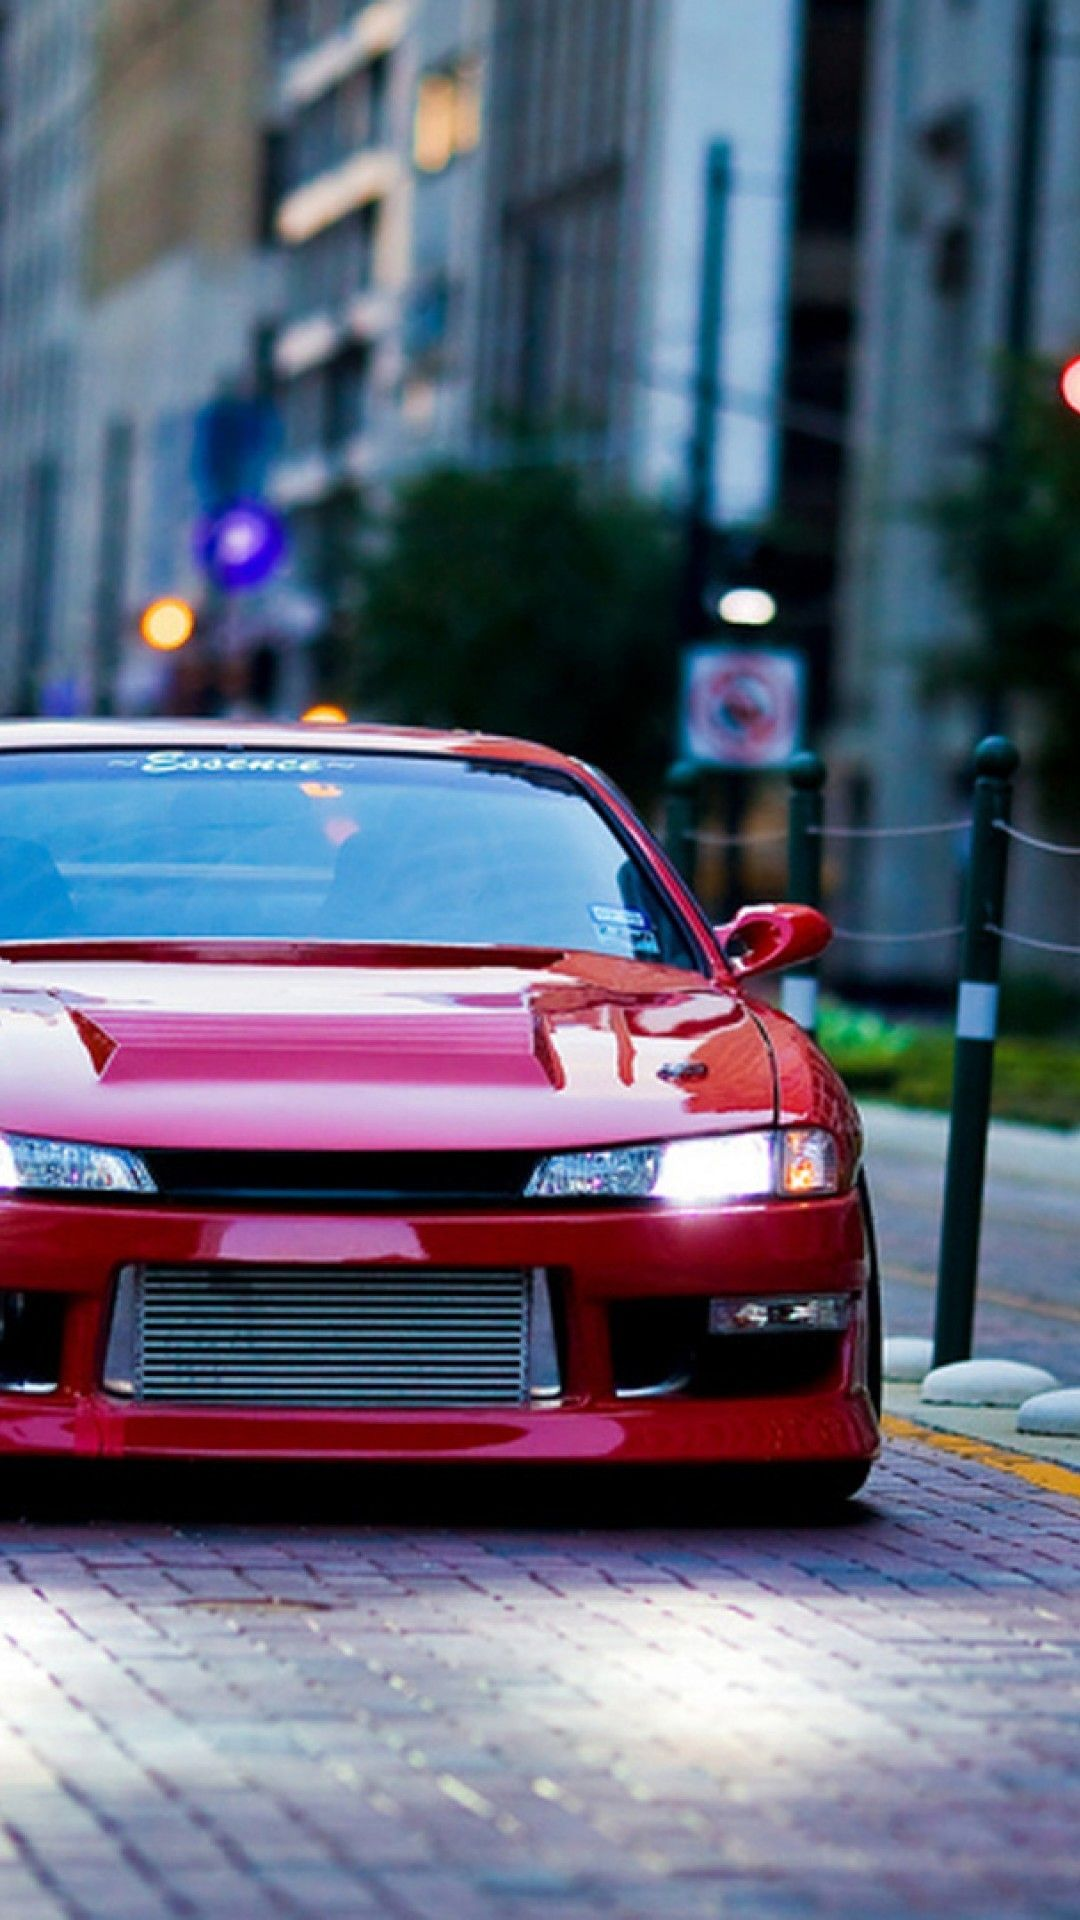 Nissan Silvia S13 Wallpapers Top Free Nissan Silvia S13 Backgrounds Wallpaperaccess